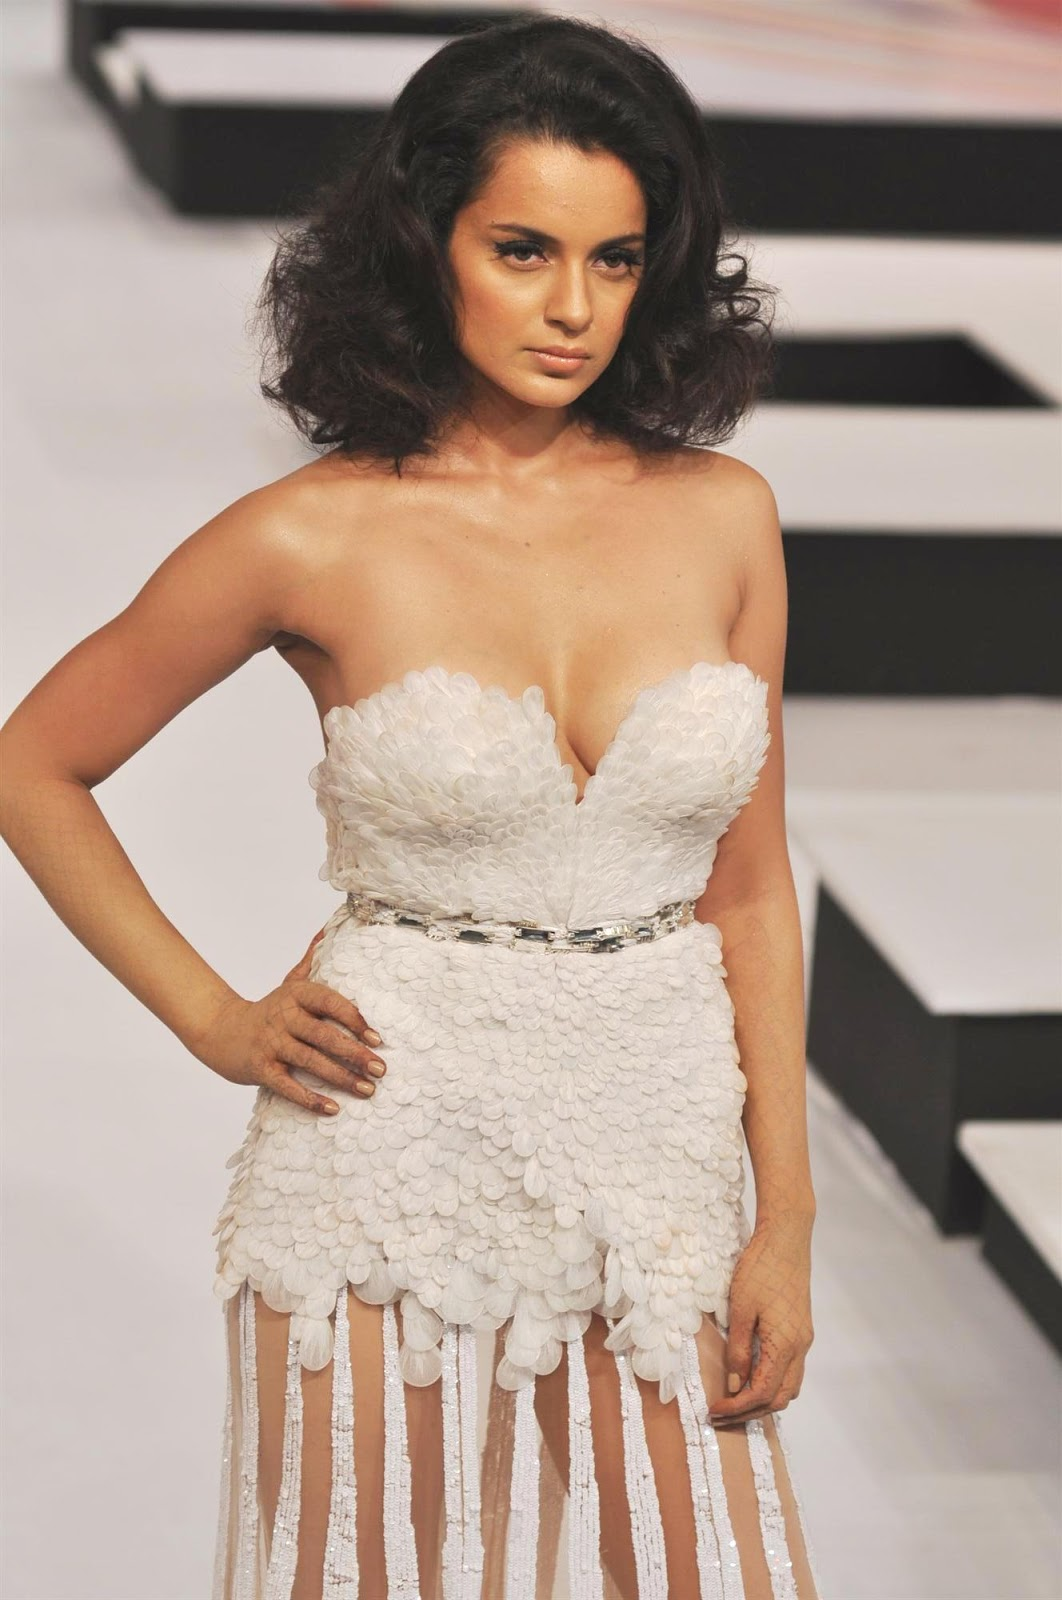 Kangana ranaut walks the ramp for blenders pride fashiion show in a white fur gown